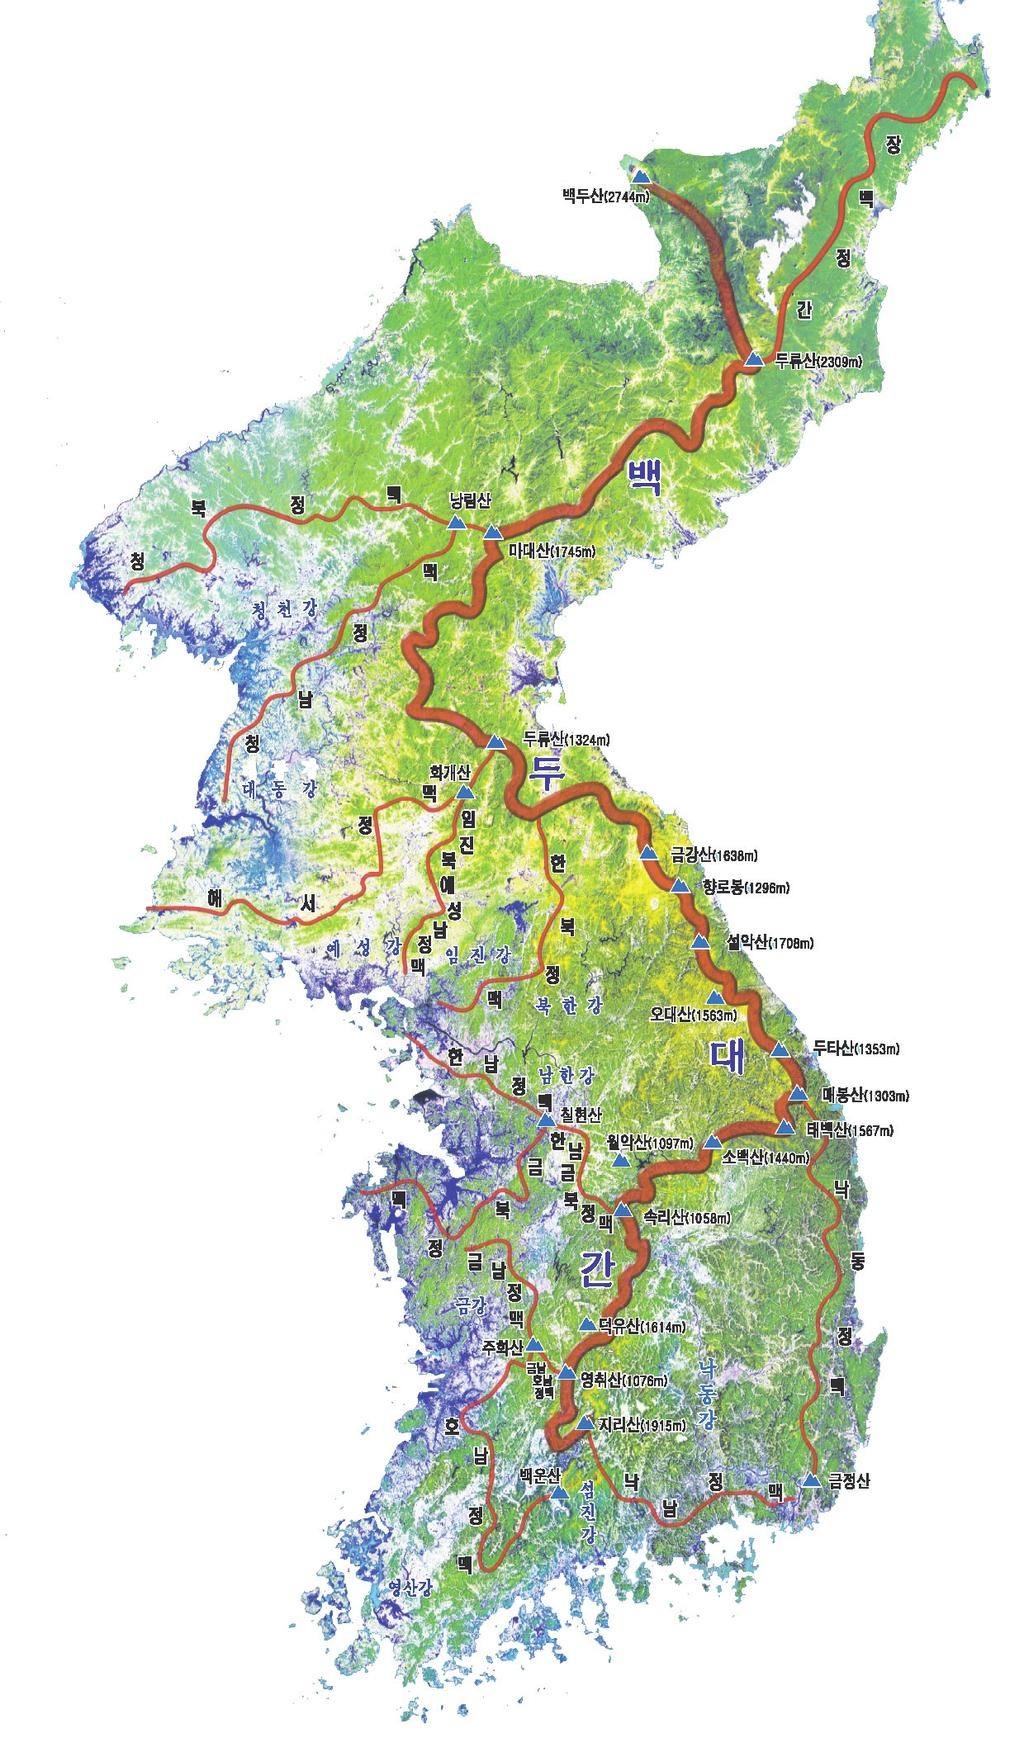 Ecological Corridors (Baekdu Daegan, South Korea) Map 1: Baekdu